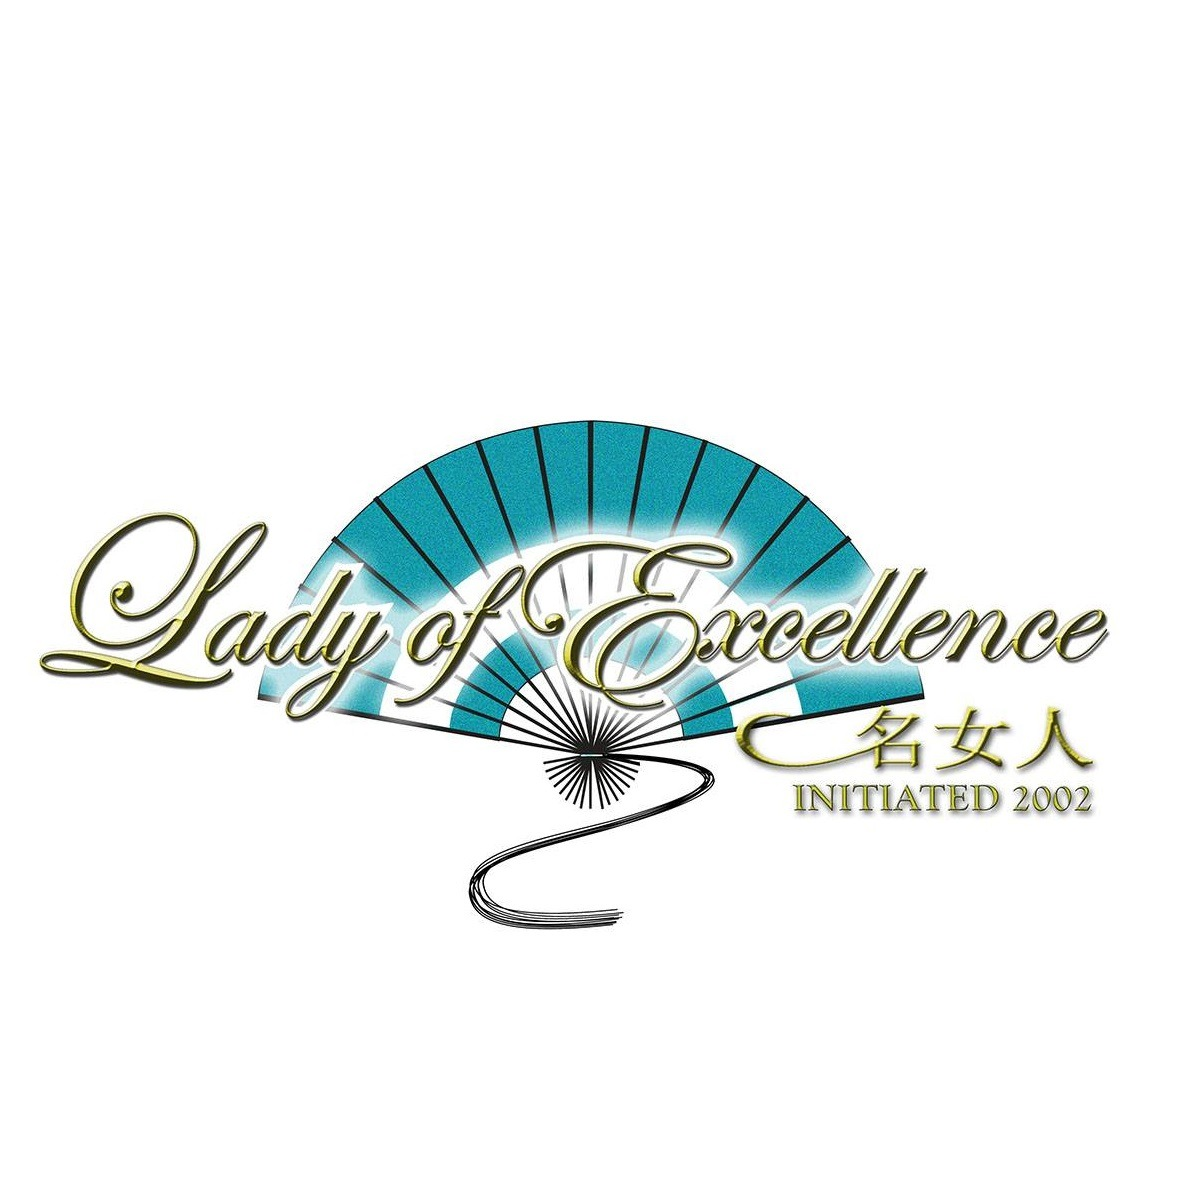 Lady of Excellence